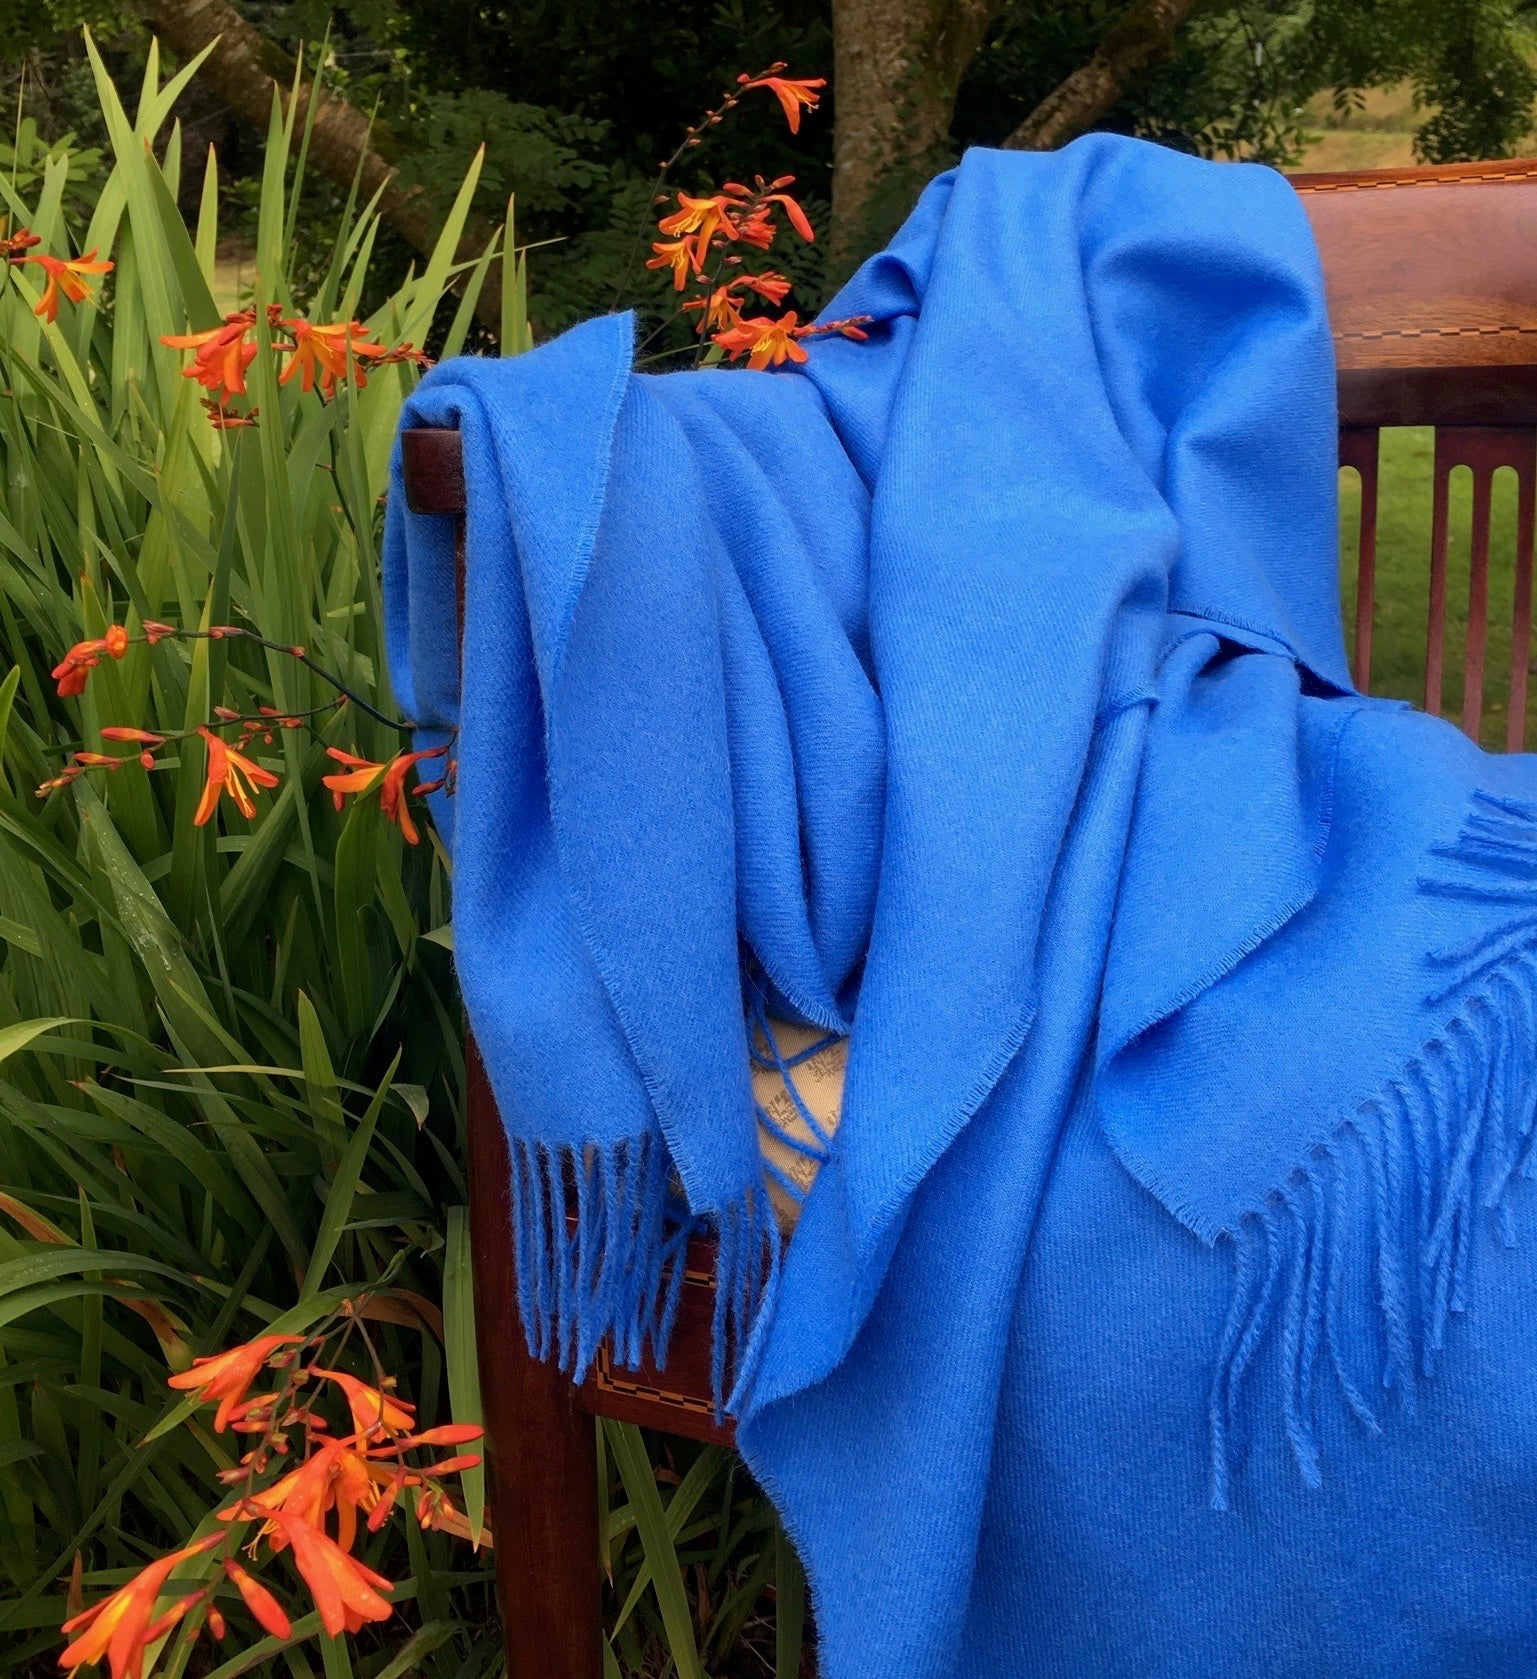 cobalt blue throw in a garden